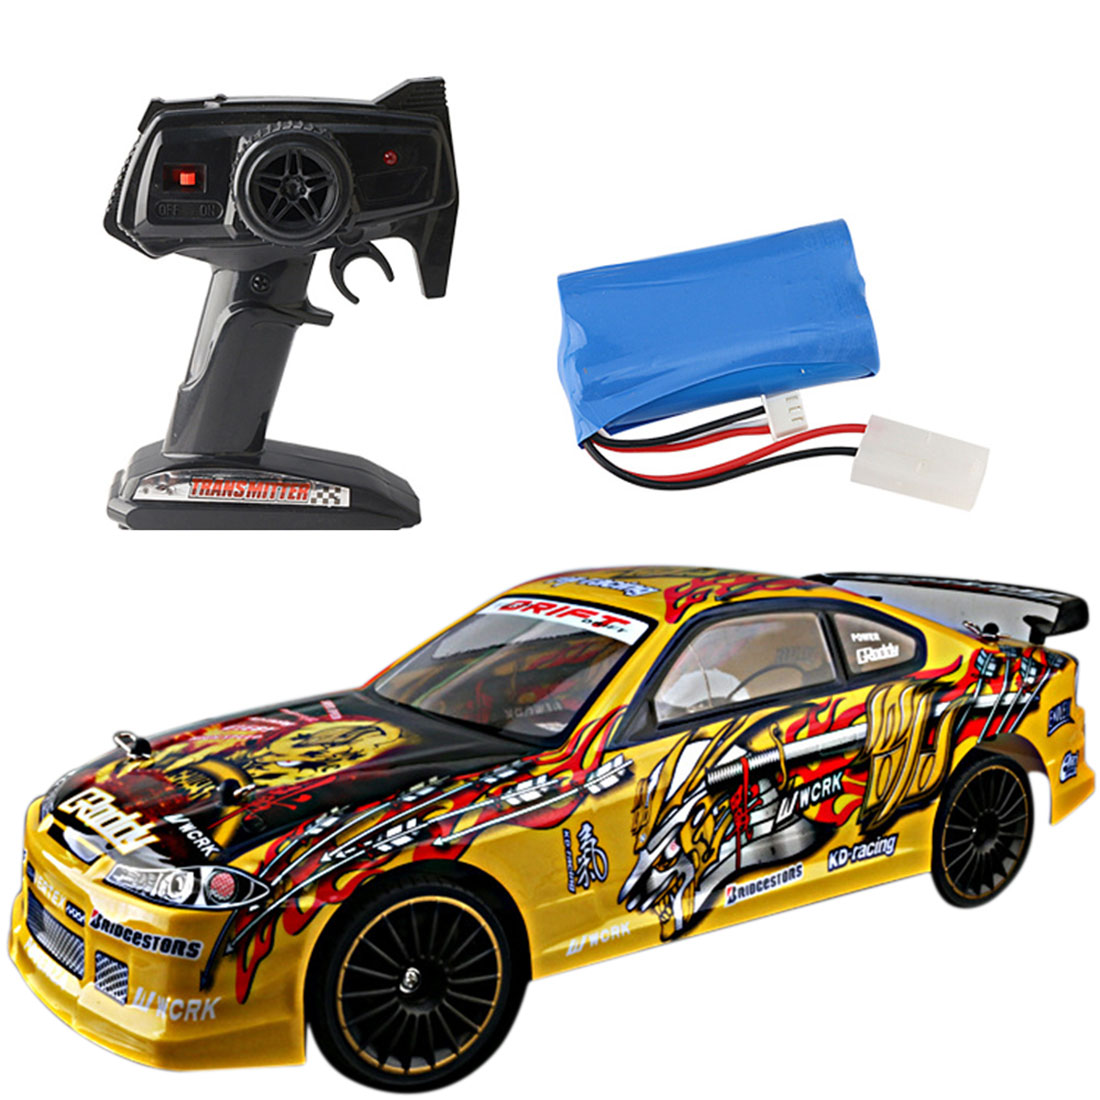 1:14 2.4G 4WD High-speed Vehicle RC Drift Car Toy For Kids Remote Control Toys Race Car Toys Boys - No.6 Yellow